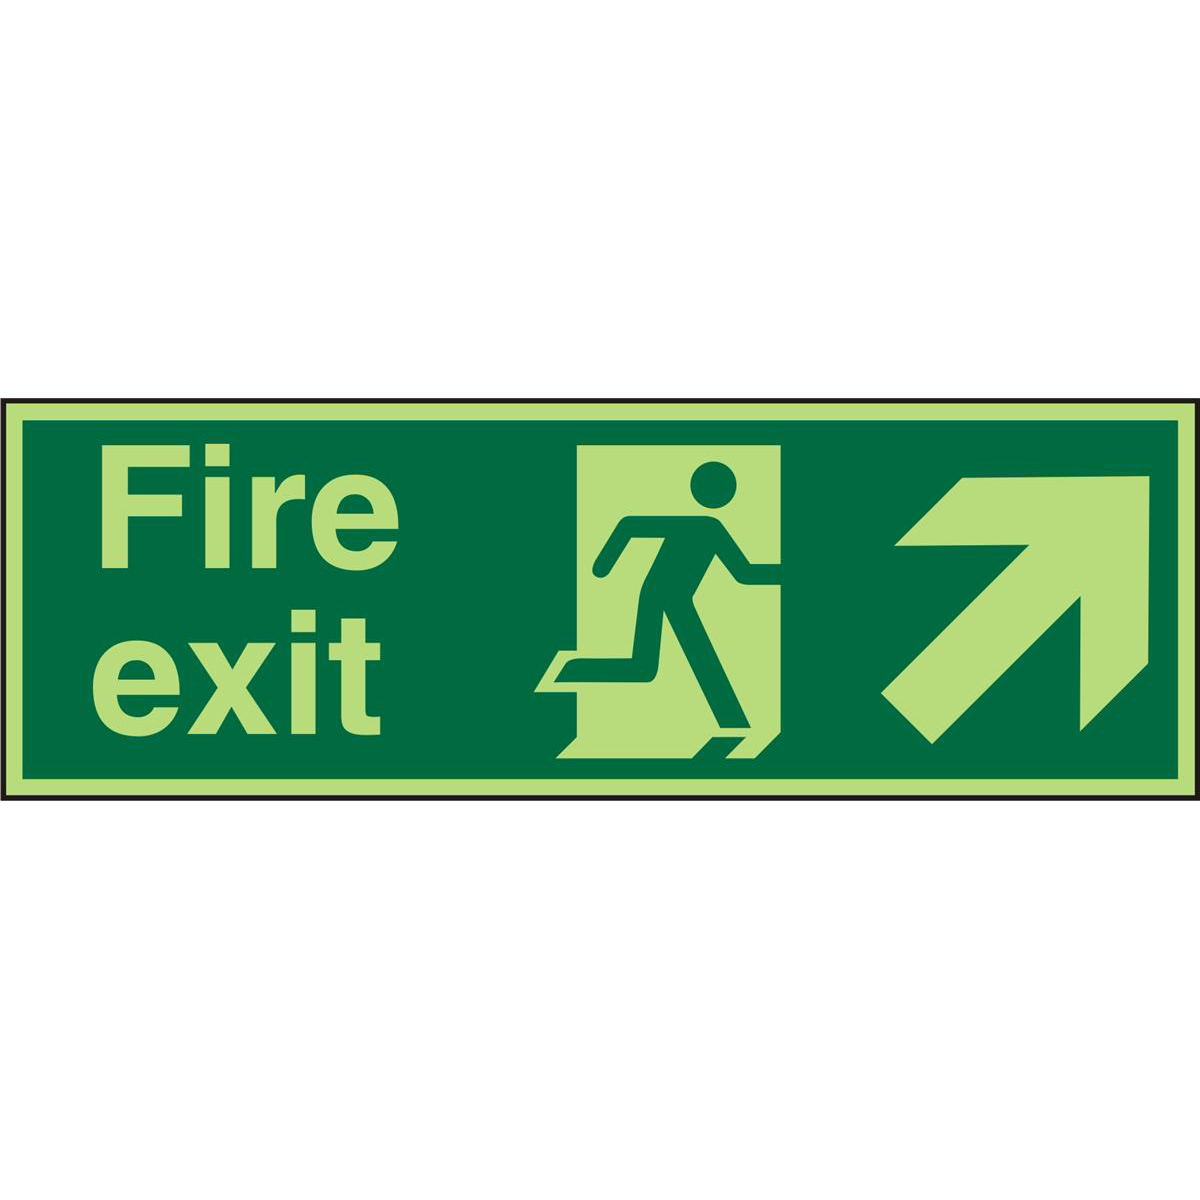 PhotolumSign 600x200 S/A FireExit Man Running Right&Arrow Ref PSP316SAV600x200 *Up to 10 Day Leadtime*